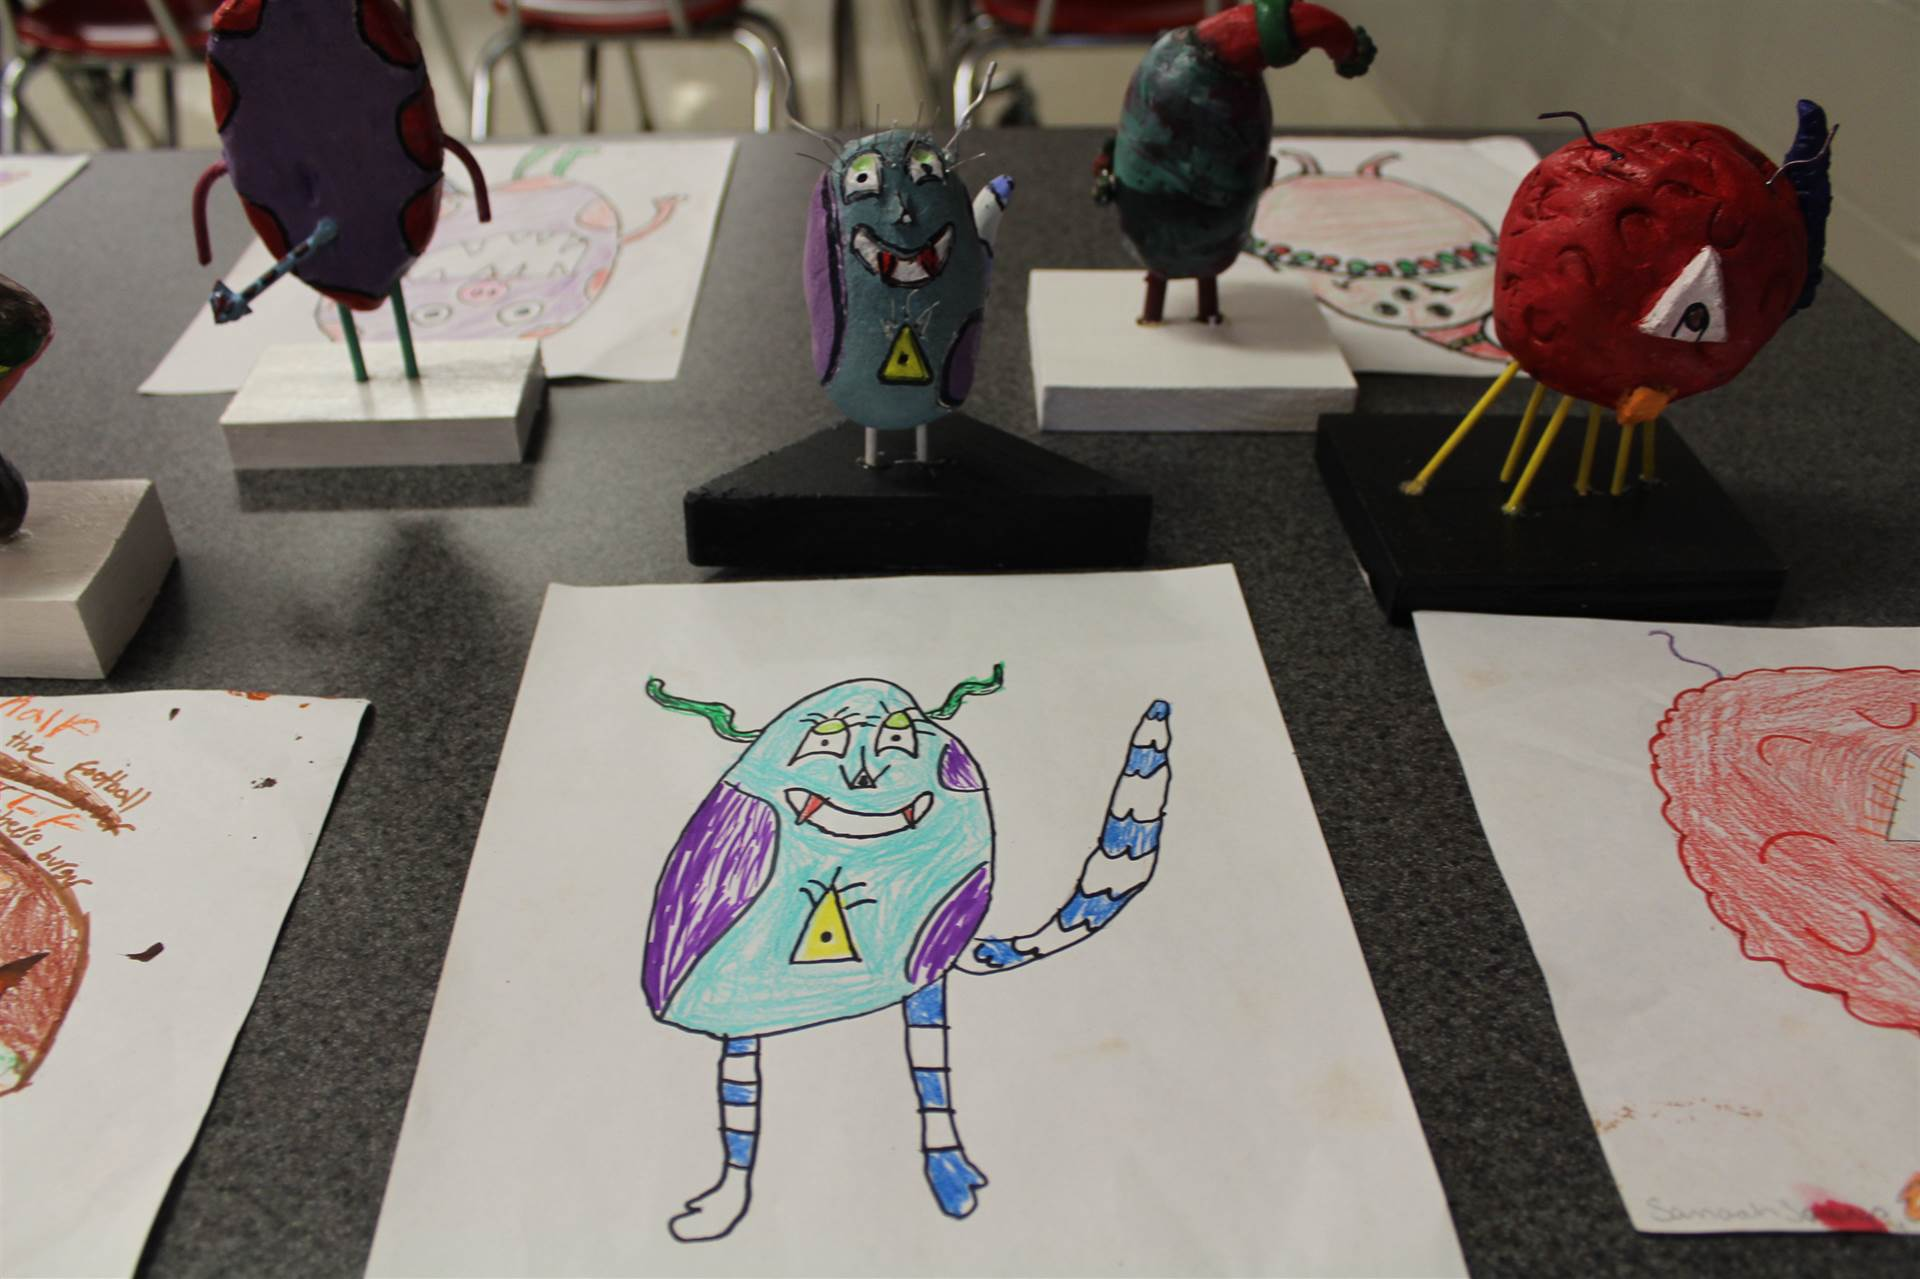 monster 3 d sculpture next to drawn picture 75.